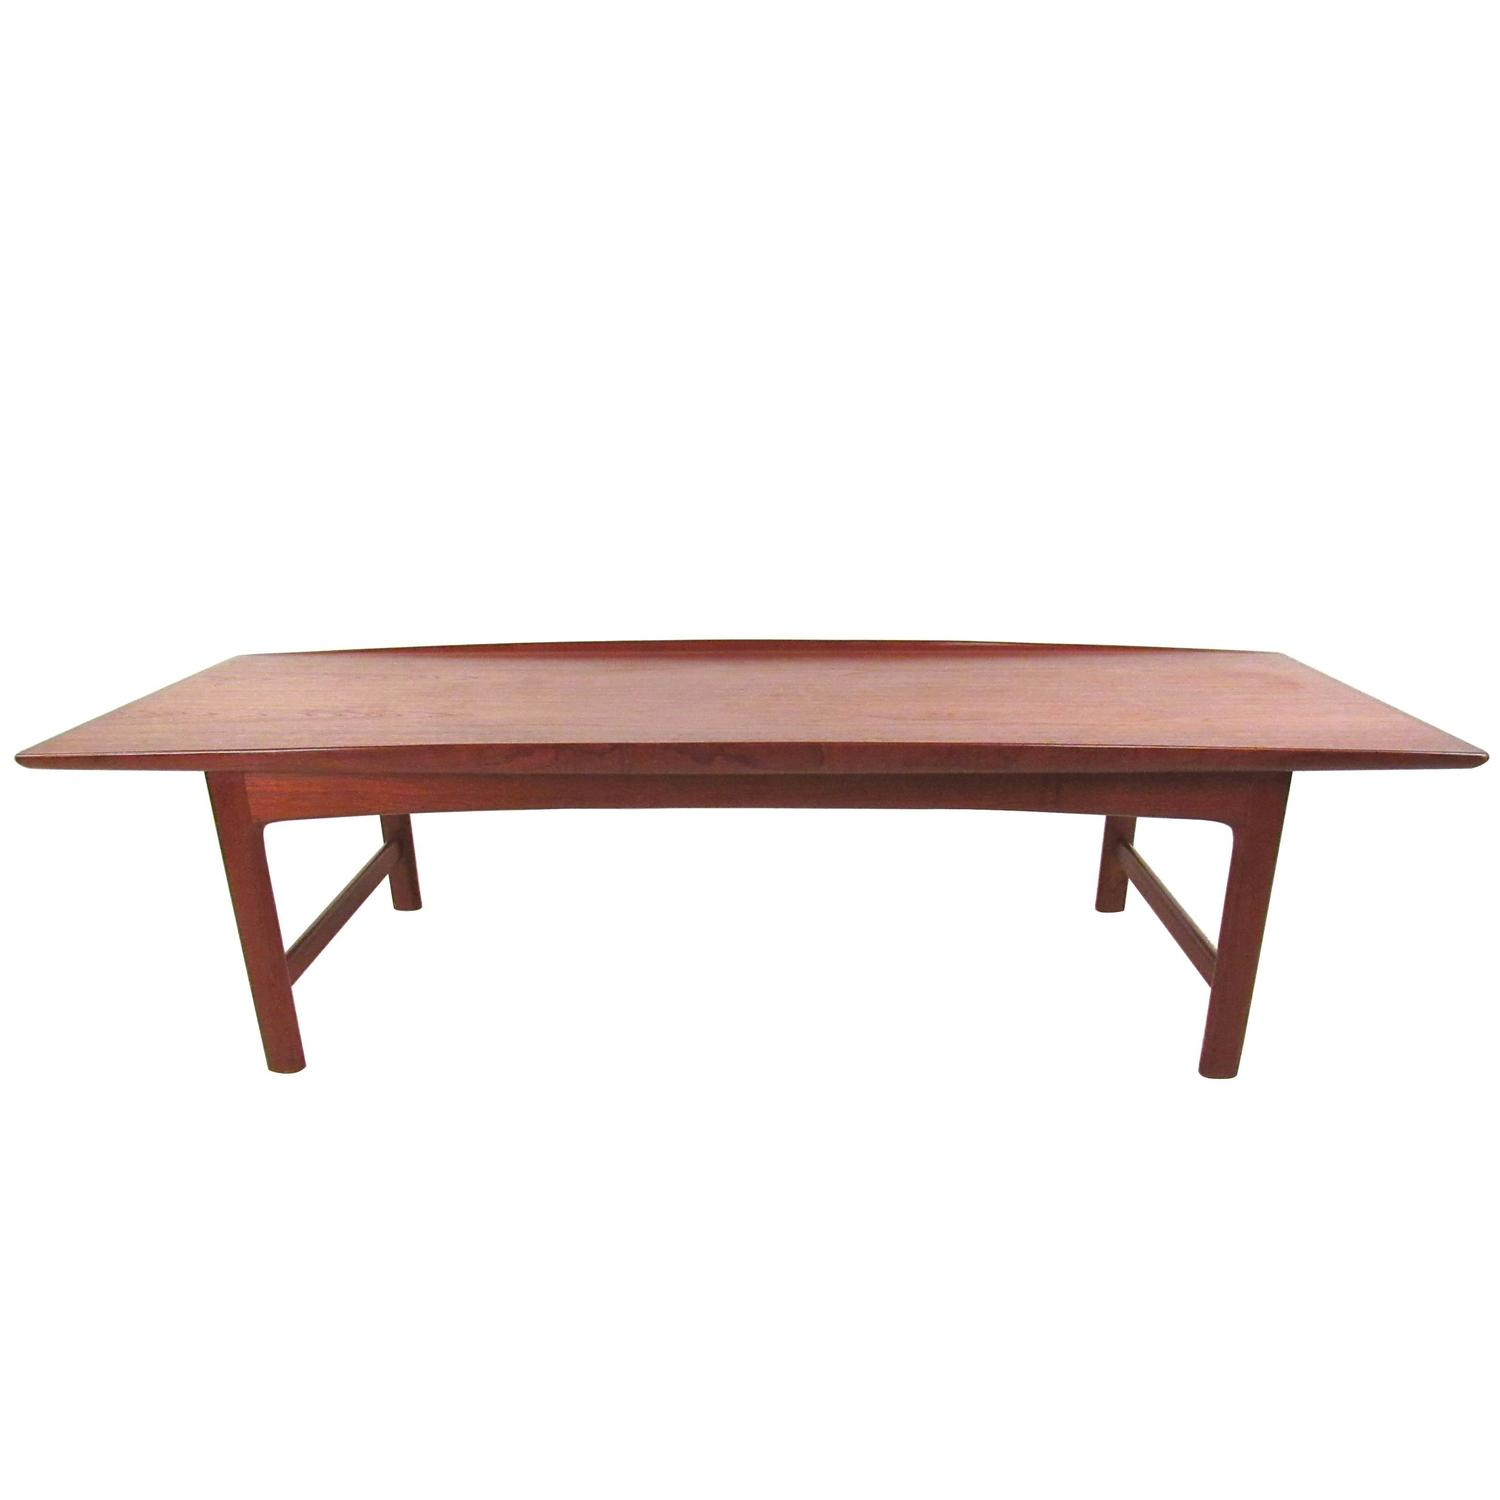 Mid Century Danish Modern Teak Coffee Table by DUX at 1stdibs